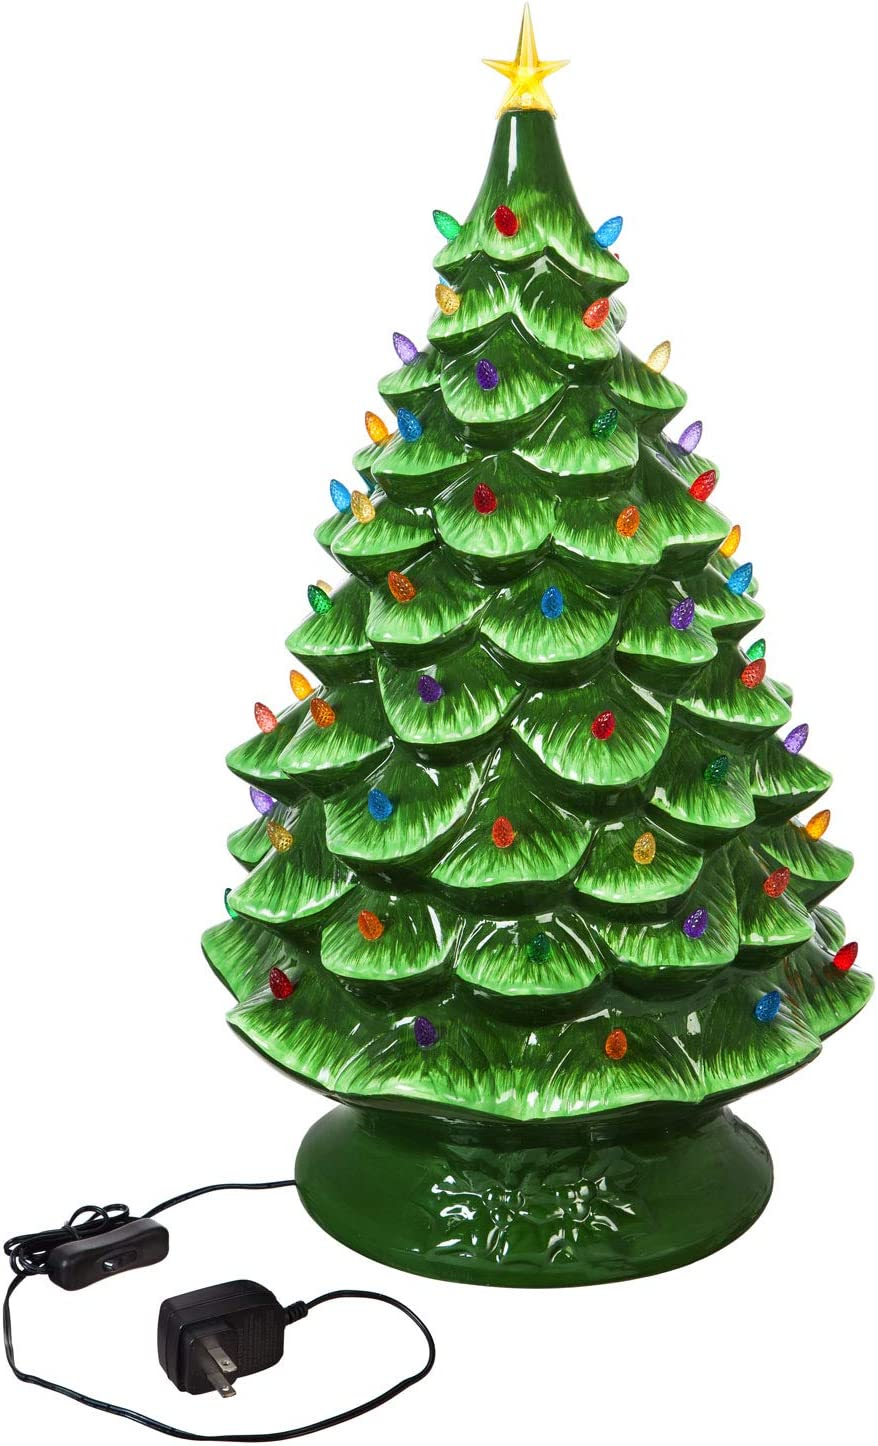 Cypress Home Beautiful Christmas Plug Max 85% OFF in NEW before selling ☆ Ceramic Tree